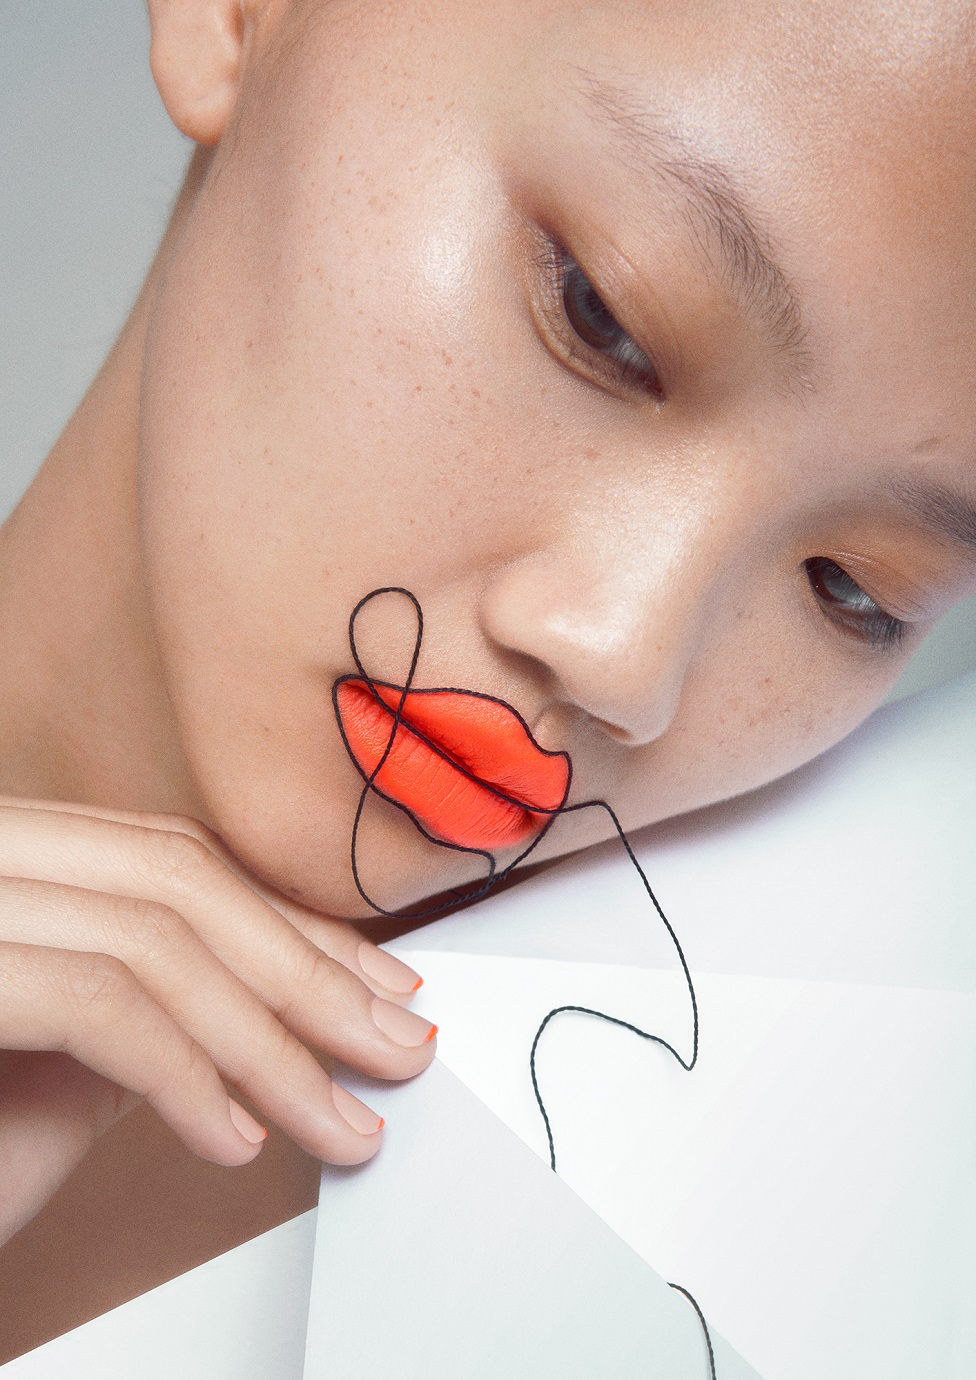 A model poses with bright lipstick and a thread running over her face and around the outline of her lips